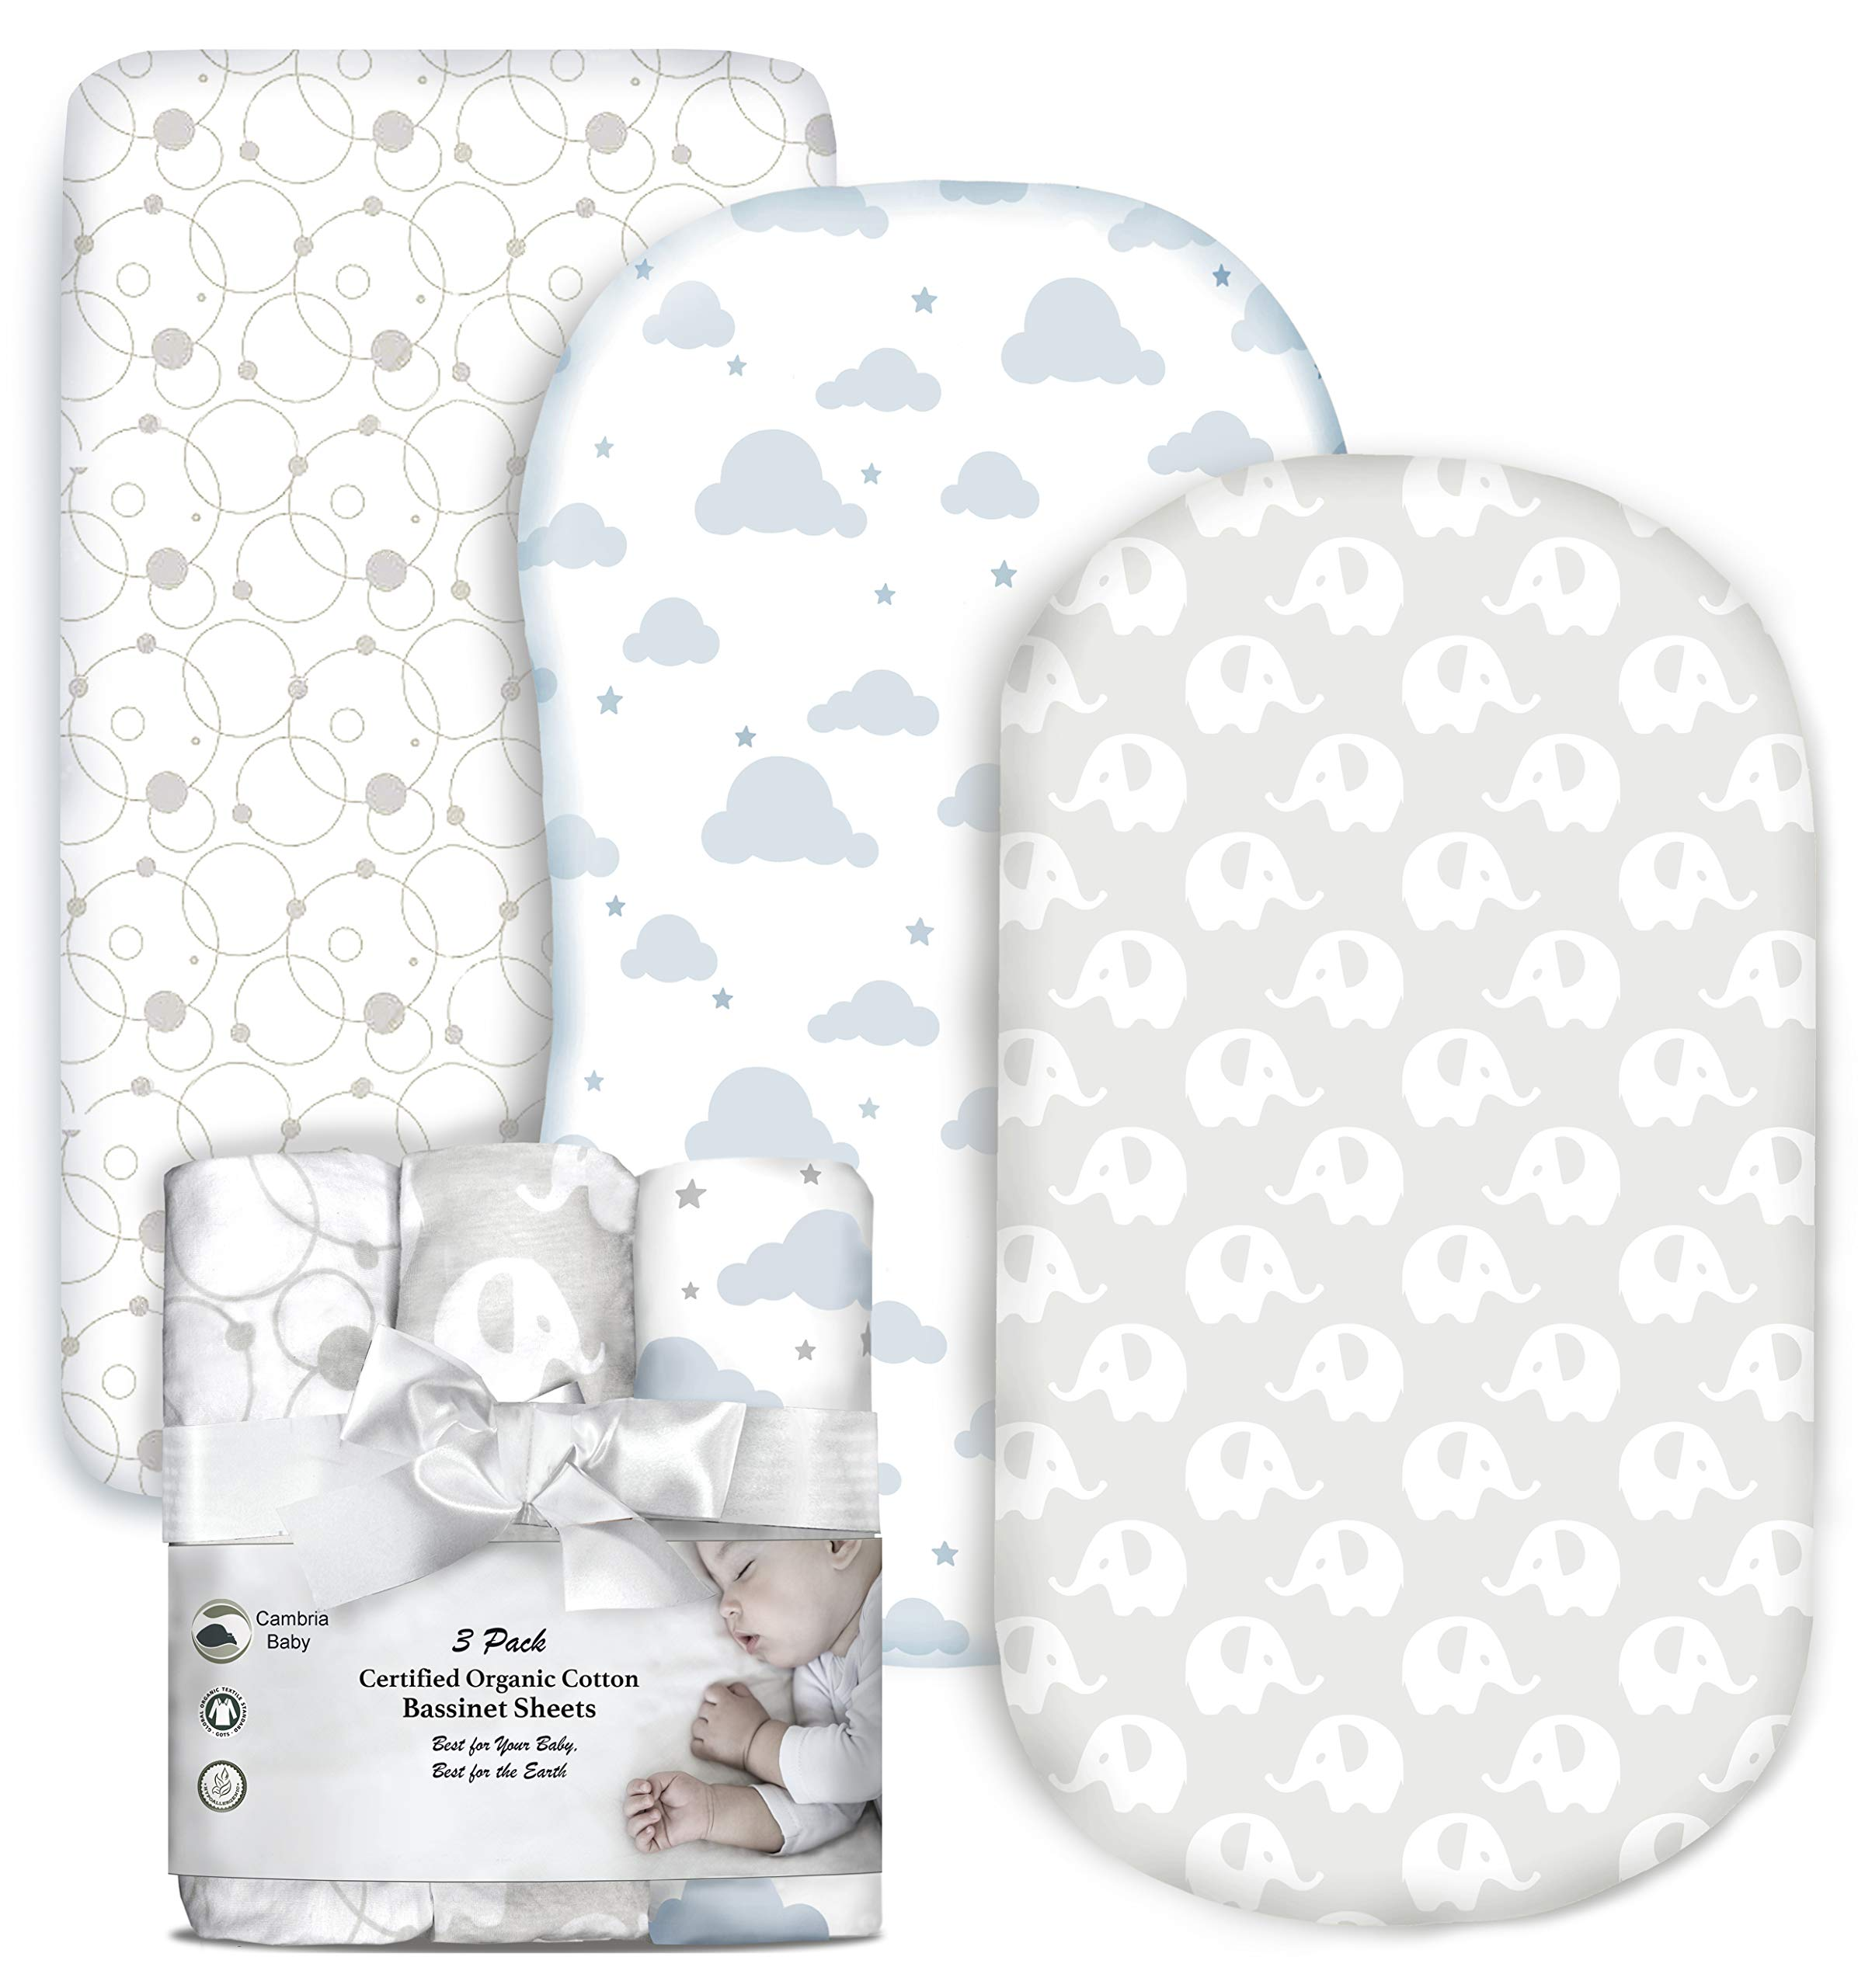 Cambria Baby 100% Organic Cotton Jersey Fitted Bassinet Sheets. Adapts to Oval, Hourglass and Rectangle Shaped Bassinet Pads. Neutral Colored Elephants, Clouds and Bubbles Patterns. 3 Pack